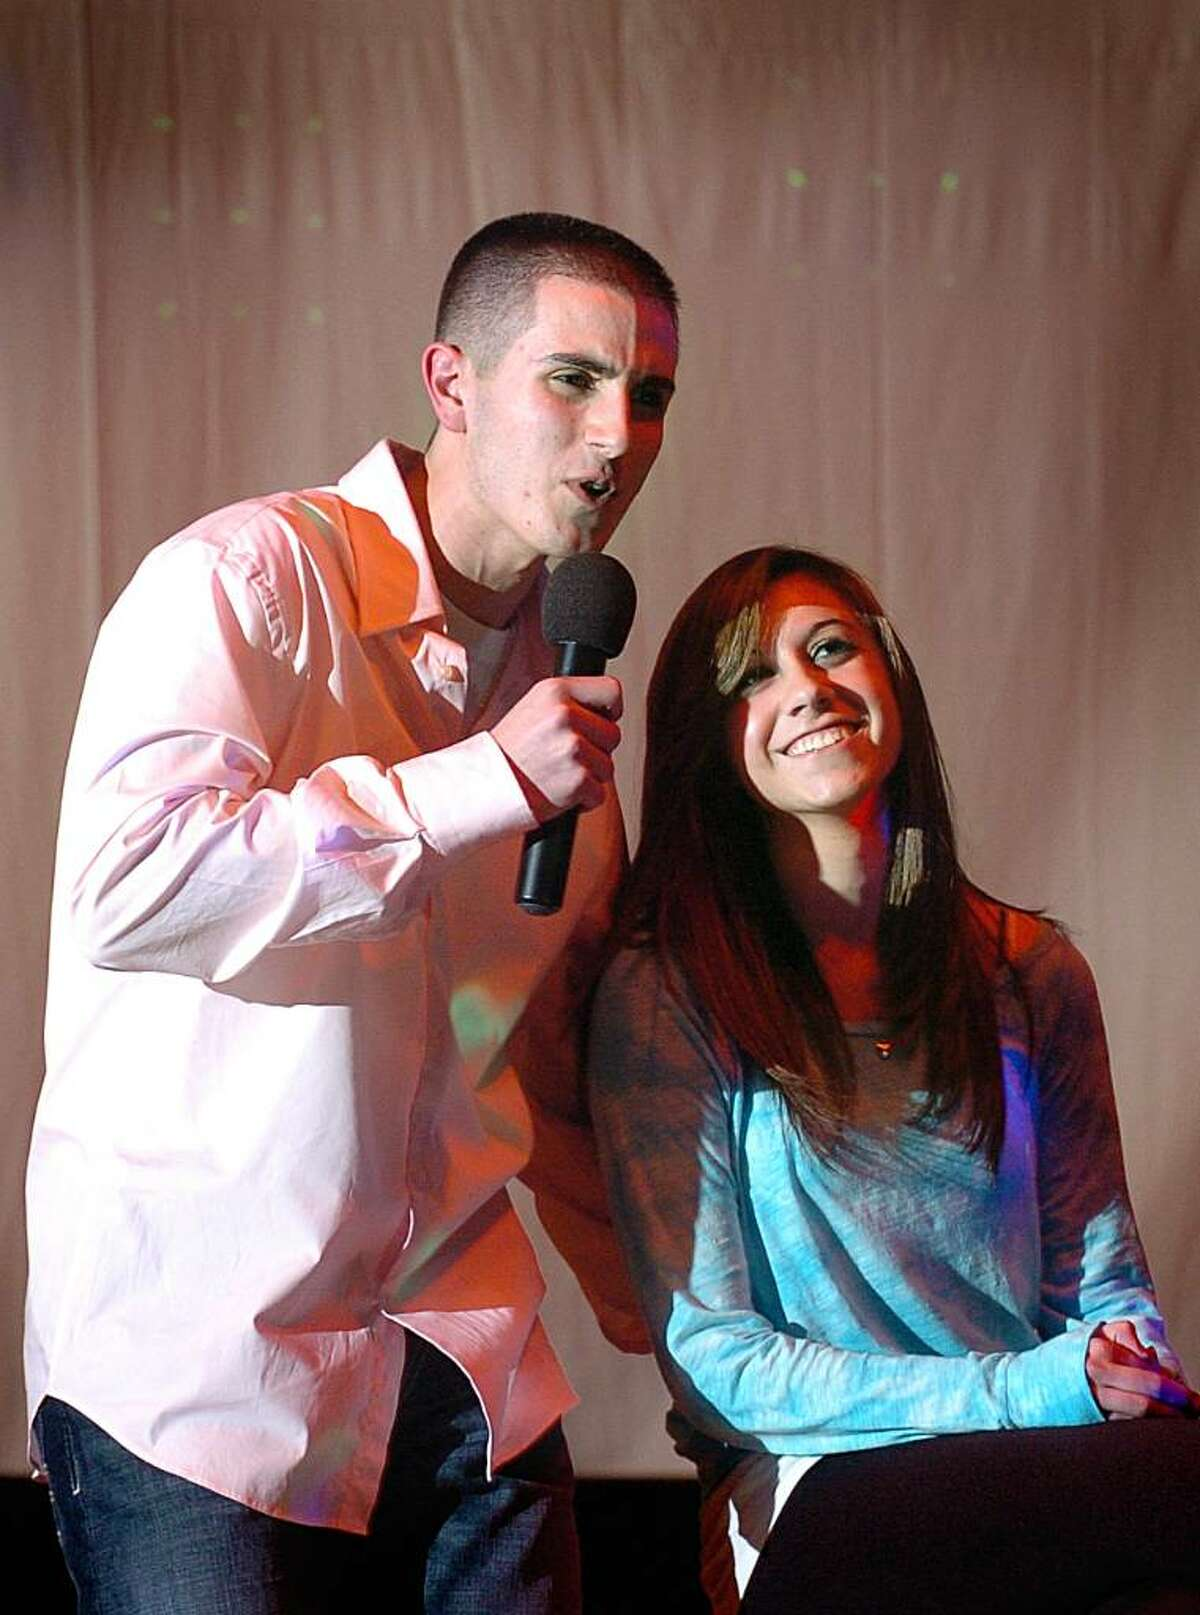 Steve Loschiavo serenades girlfriend Mallory Morlando on stage during the talent portion of St. Joseph's fourth annual Mr. Student Body Competition Thursday Mar. 18, 2010 at the school in Trumbull. Proceeds benefit the Center for Women and Families of Bridgeport and their White Ribbon Campaign, in which men and boys oppose violence against women.